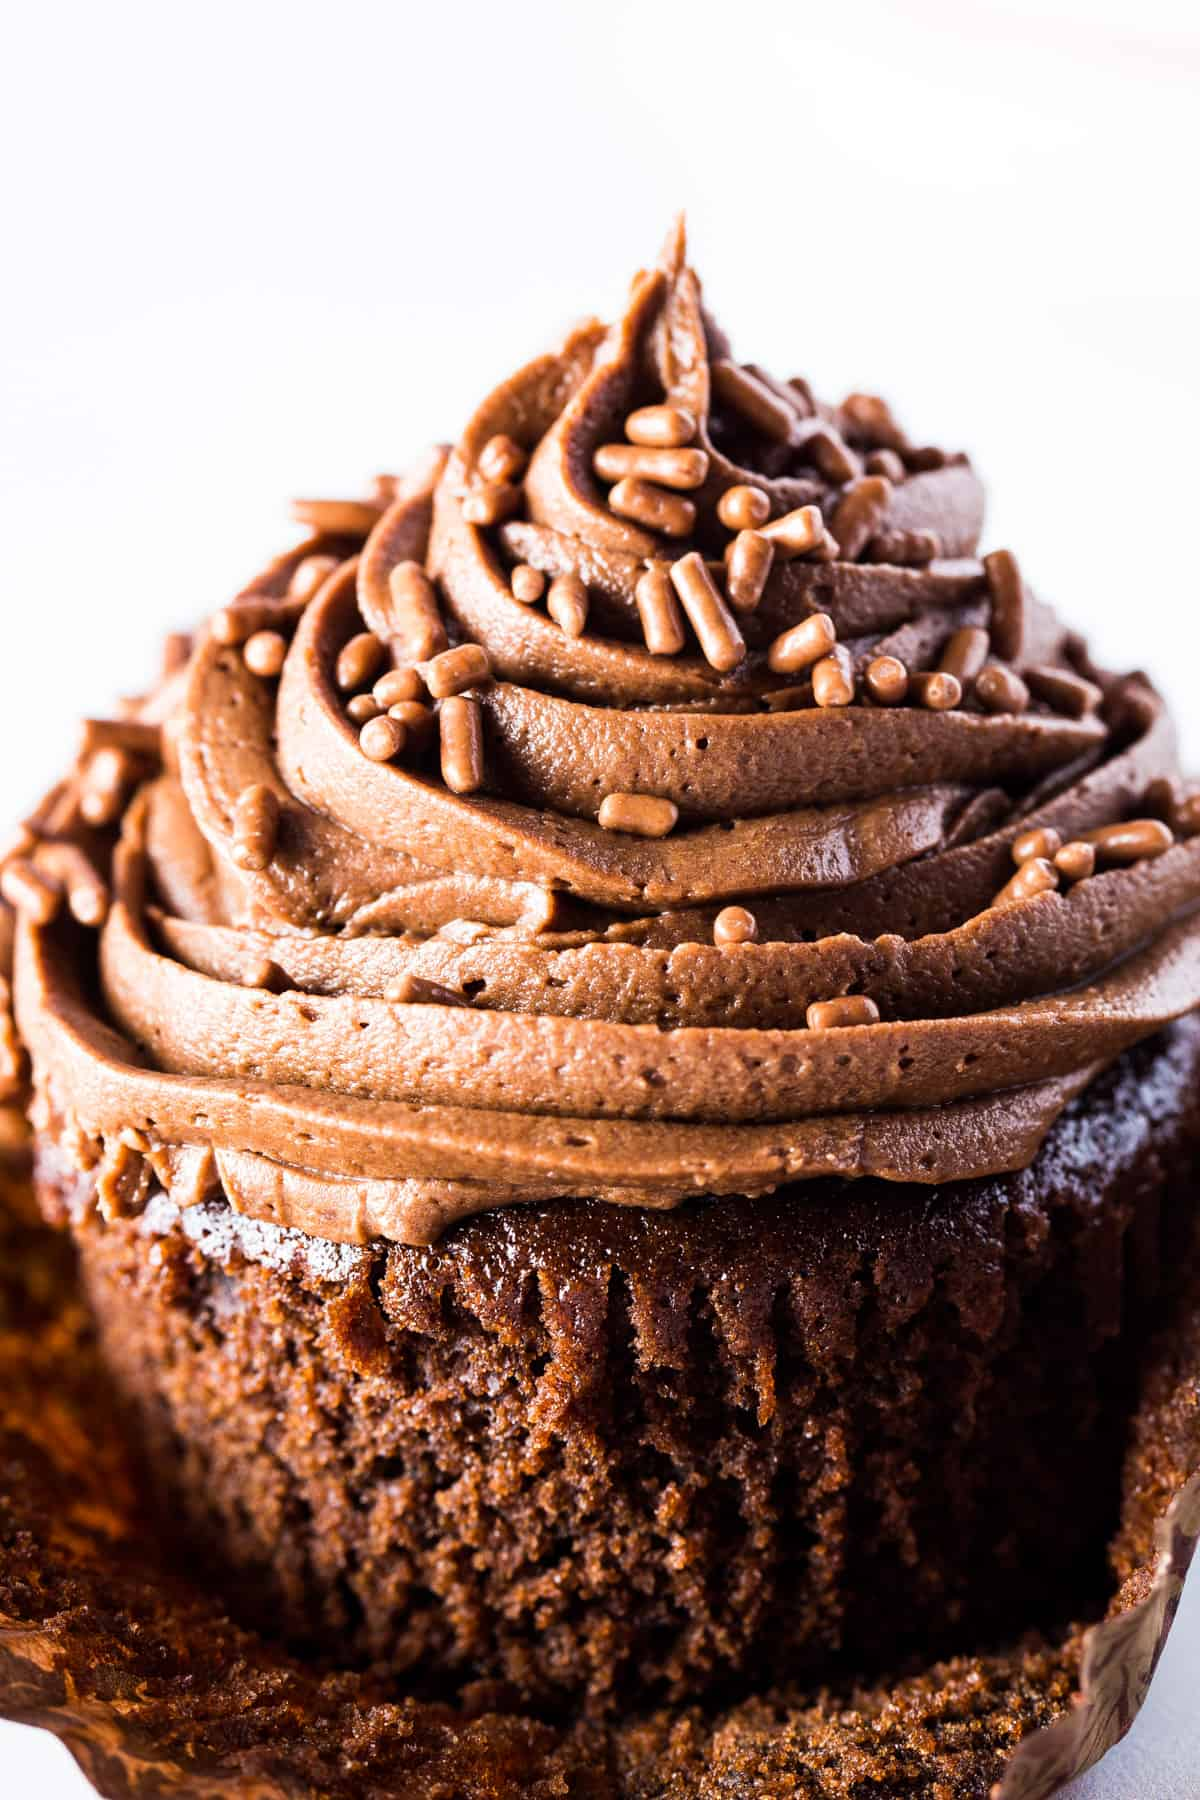 Gluten-free chocolate cupcake with chocolate frosting. Unwrapped from cupcake liner.